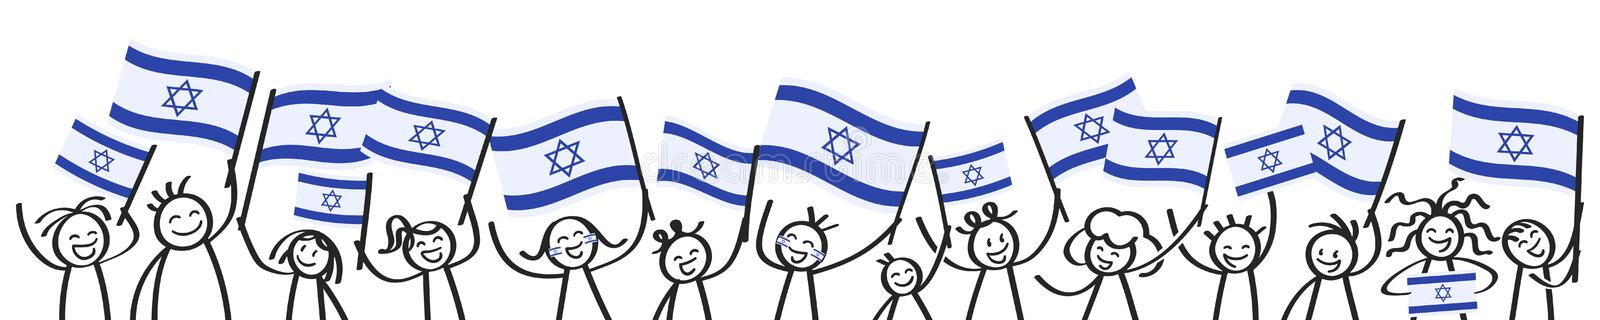 Cheering crowd of happy stick figures with Israeli national flags, smiling Israel supporters, sports fans royalty free illustration